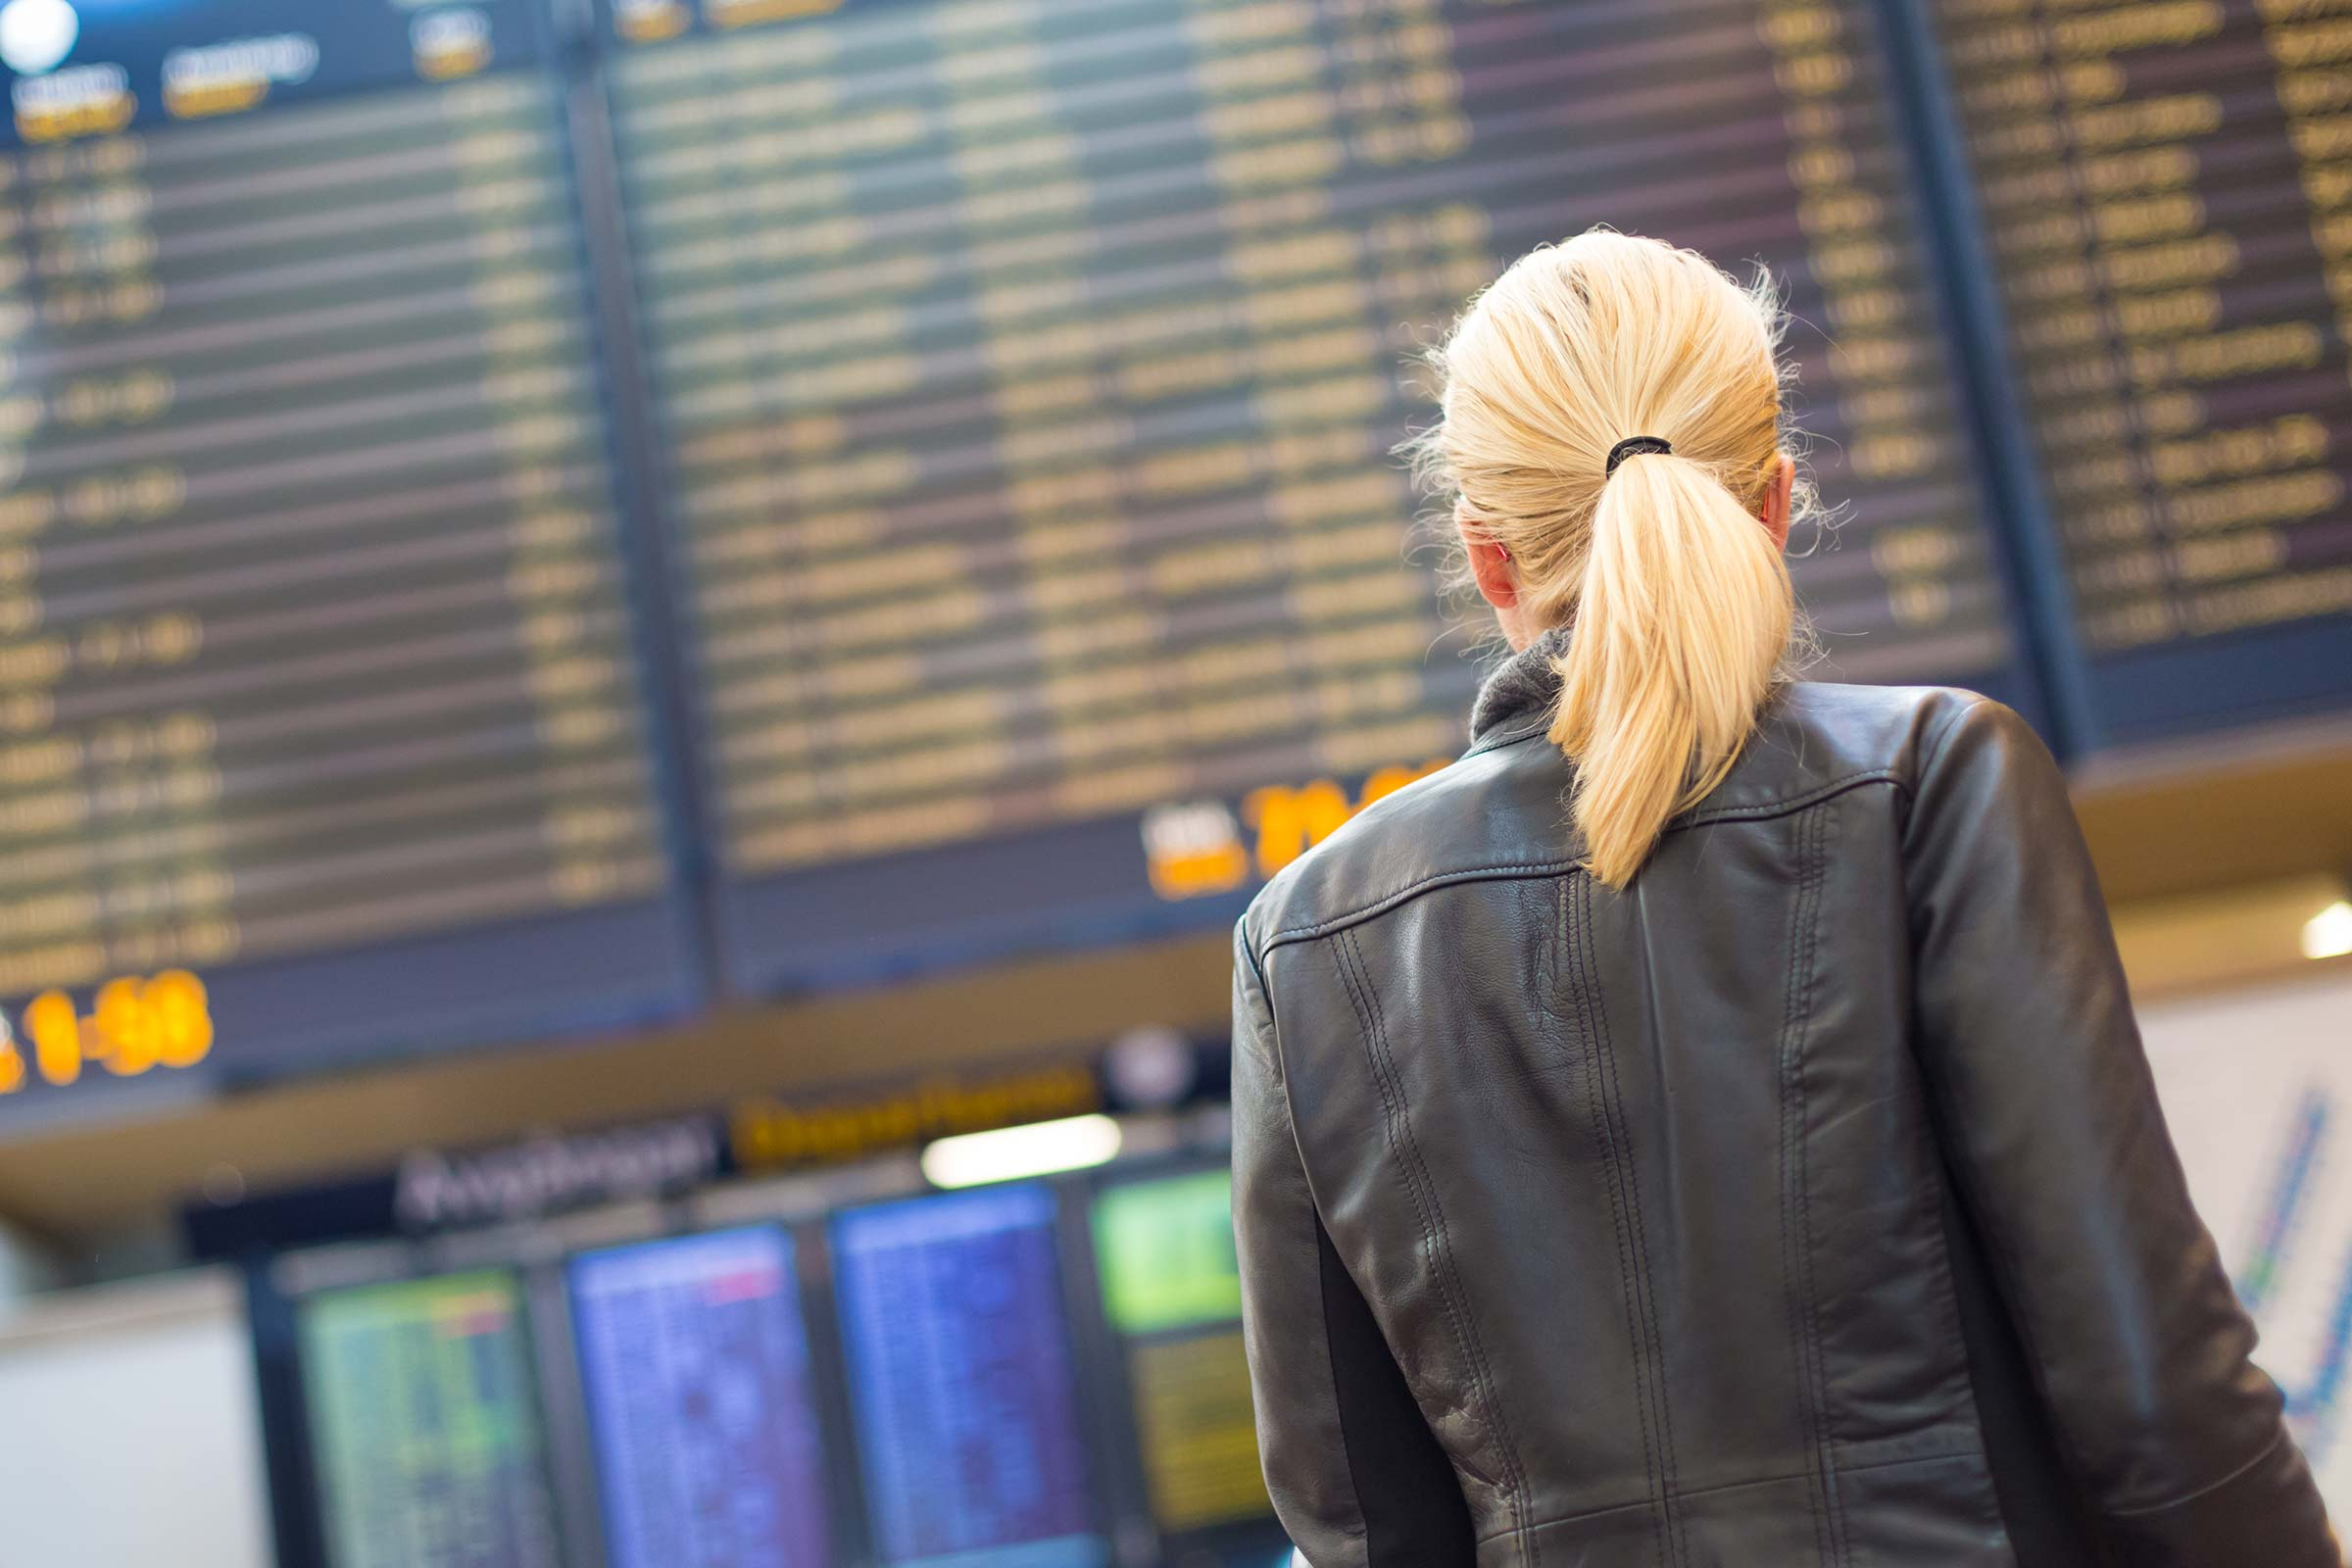 Air Travel Tips to Make Your Flight Easier